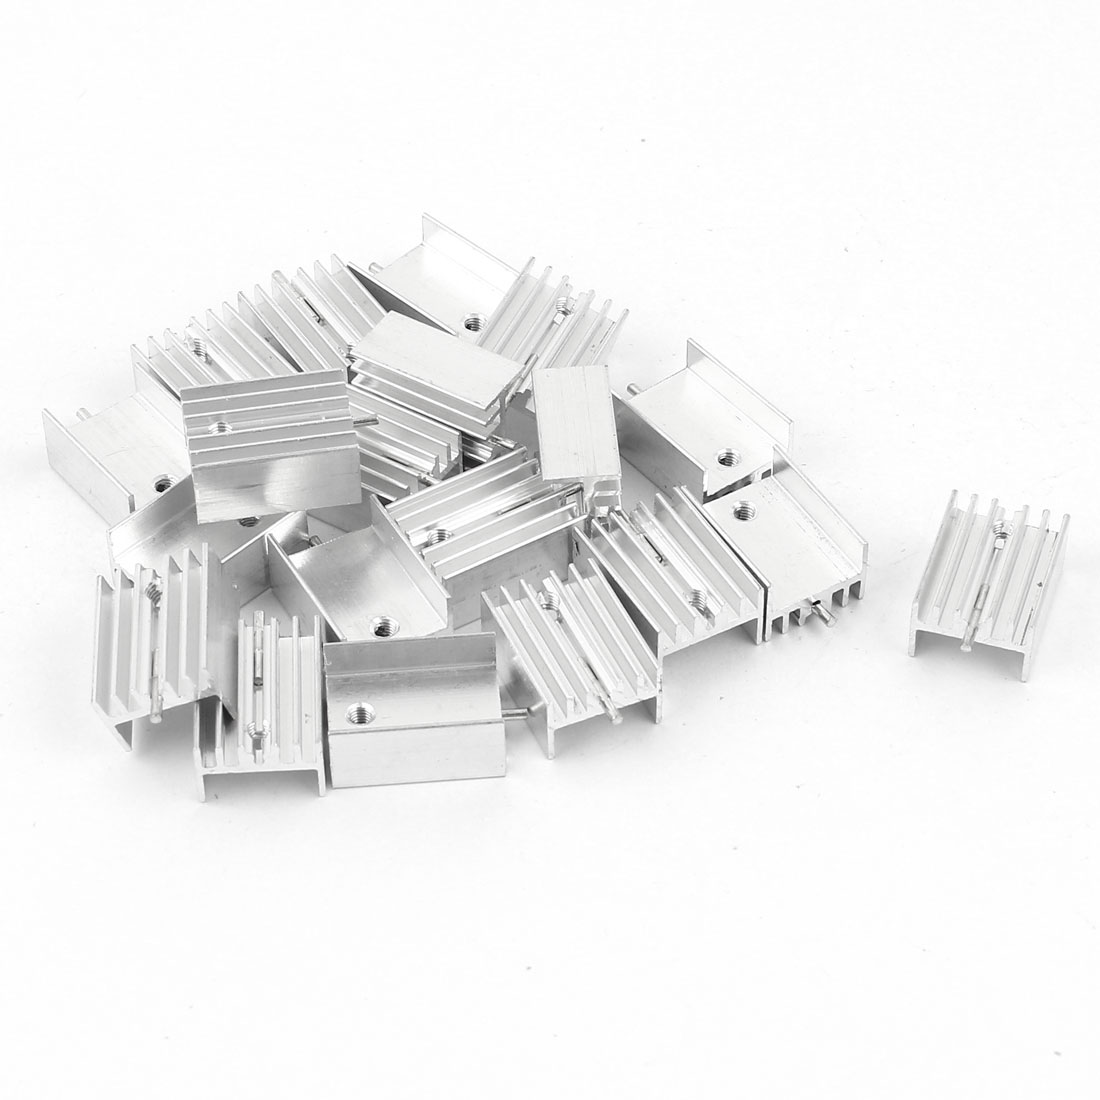 20 Pcs Aluminum Heatsinks Radiator + Needle 20x15x10mm Silver Tone for Mosfet IC